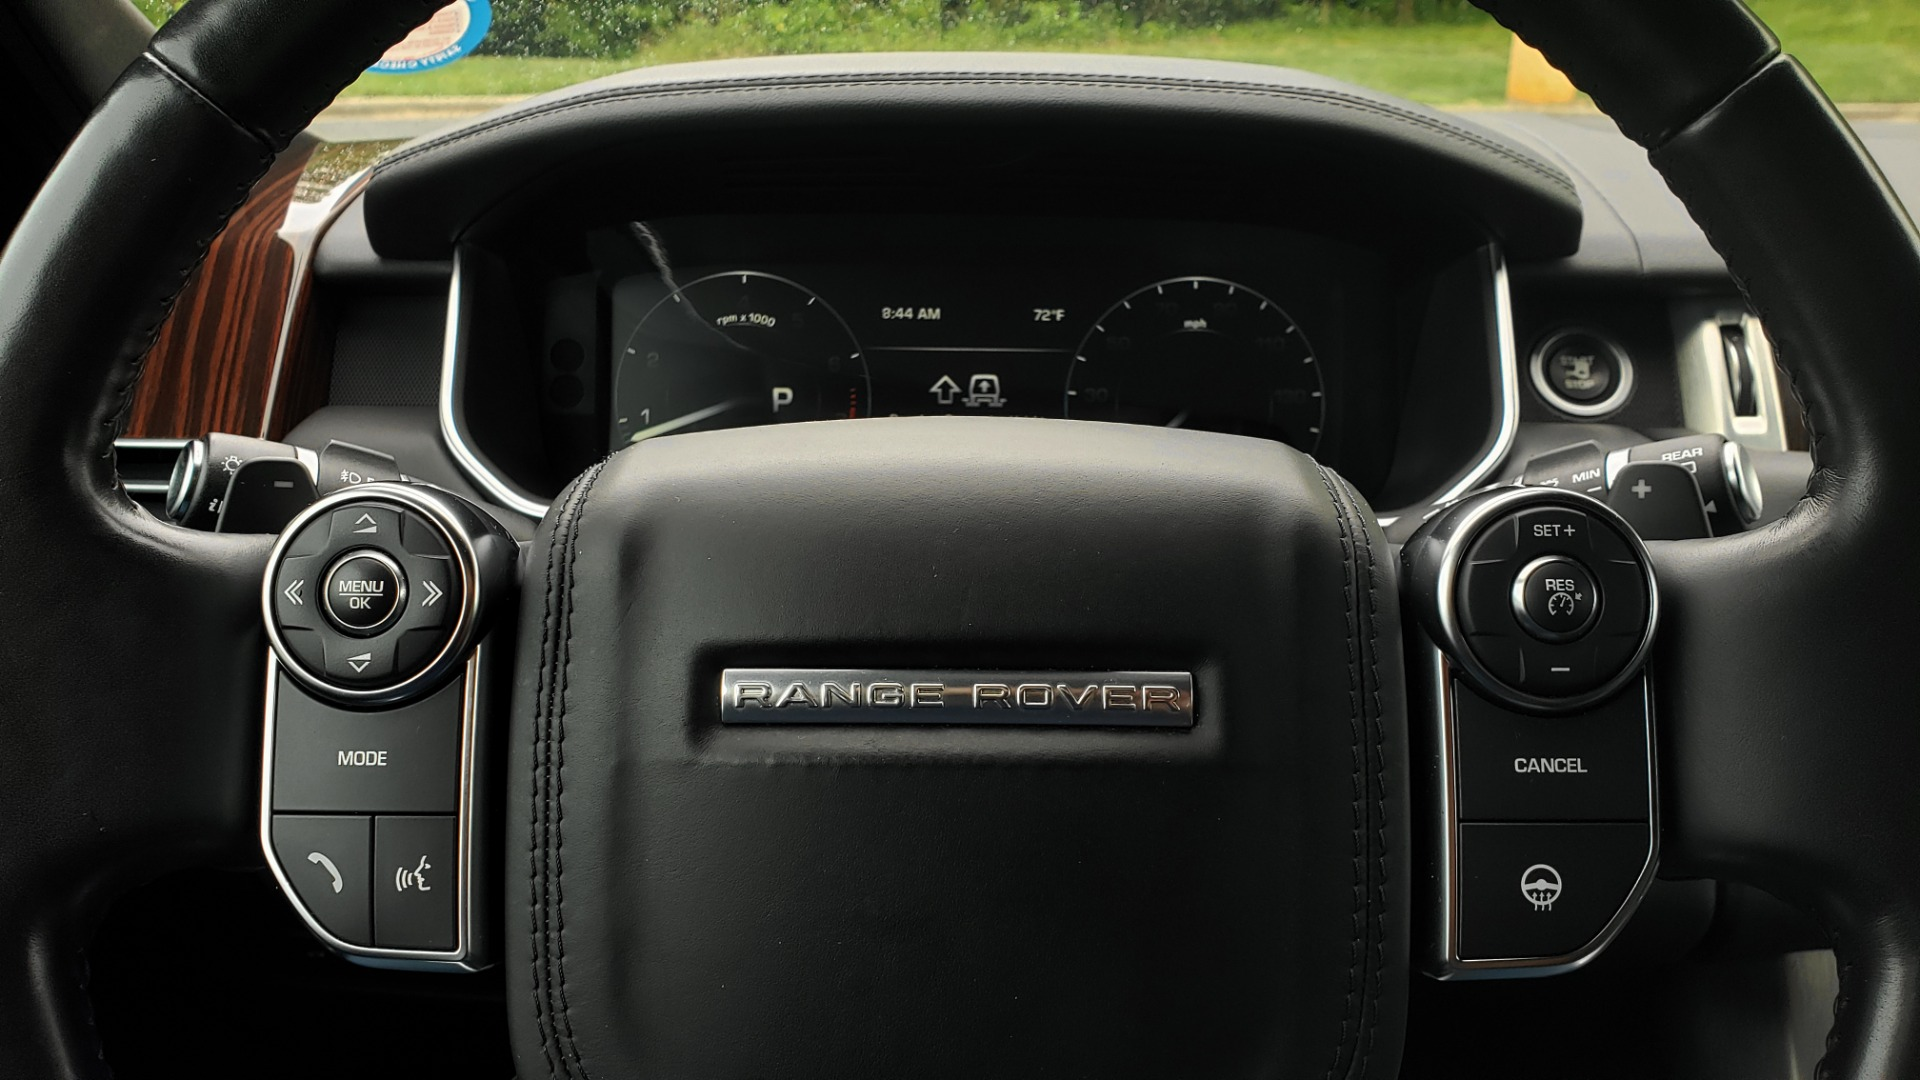 Used 2016 Land Rover Range Rover HSE 3.0L SC V6 / NAV / PANO-ROOF / VENT SEATS / REARVIEW / BLIND SPOT for sale Sold at Formula Imports in Charlotte NC 28227 46